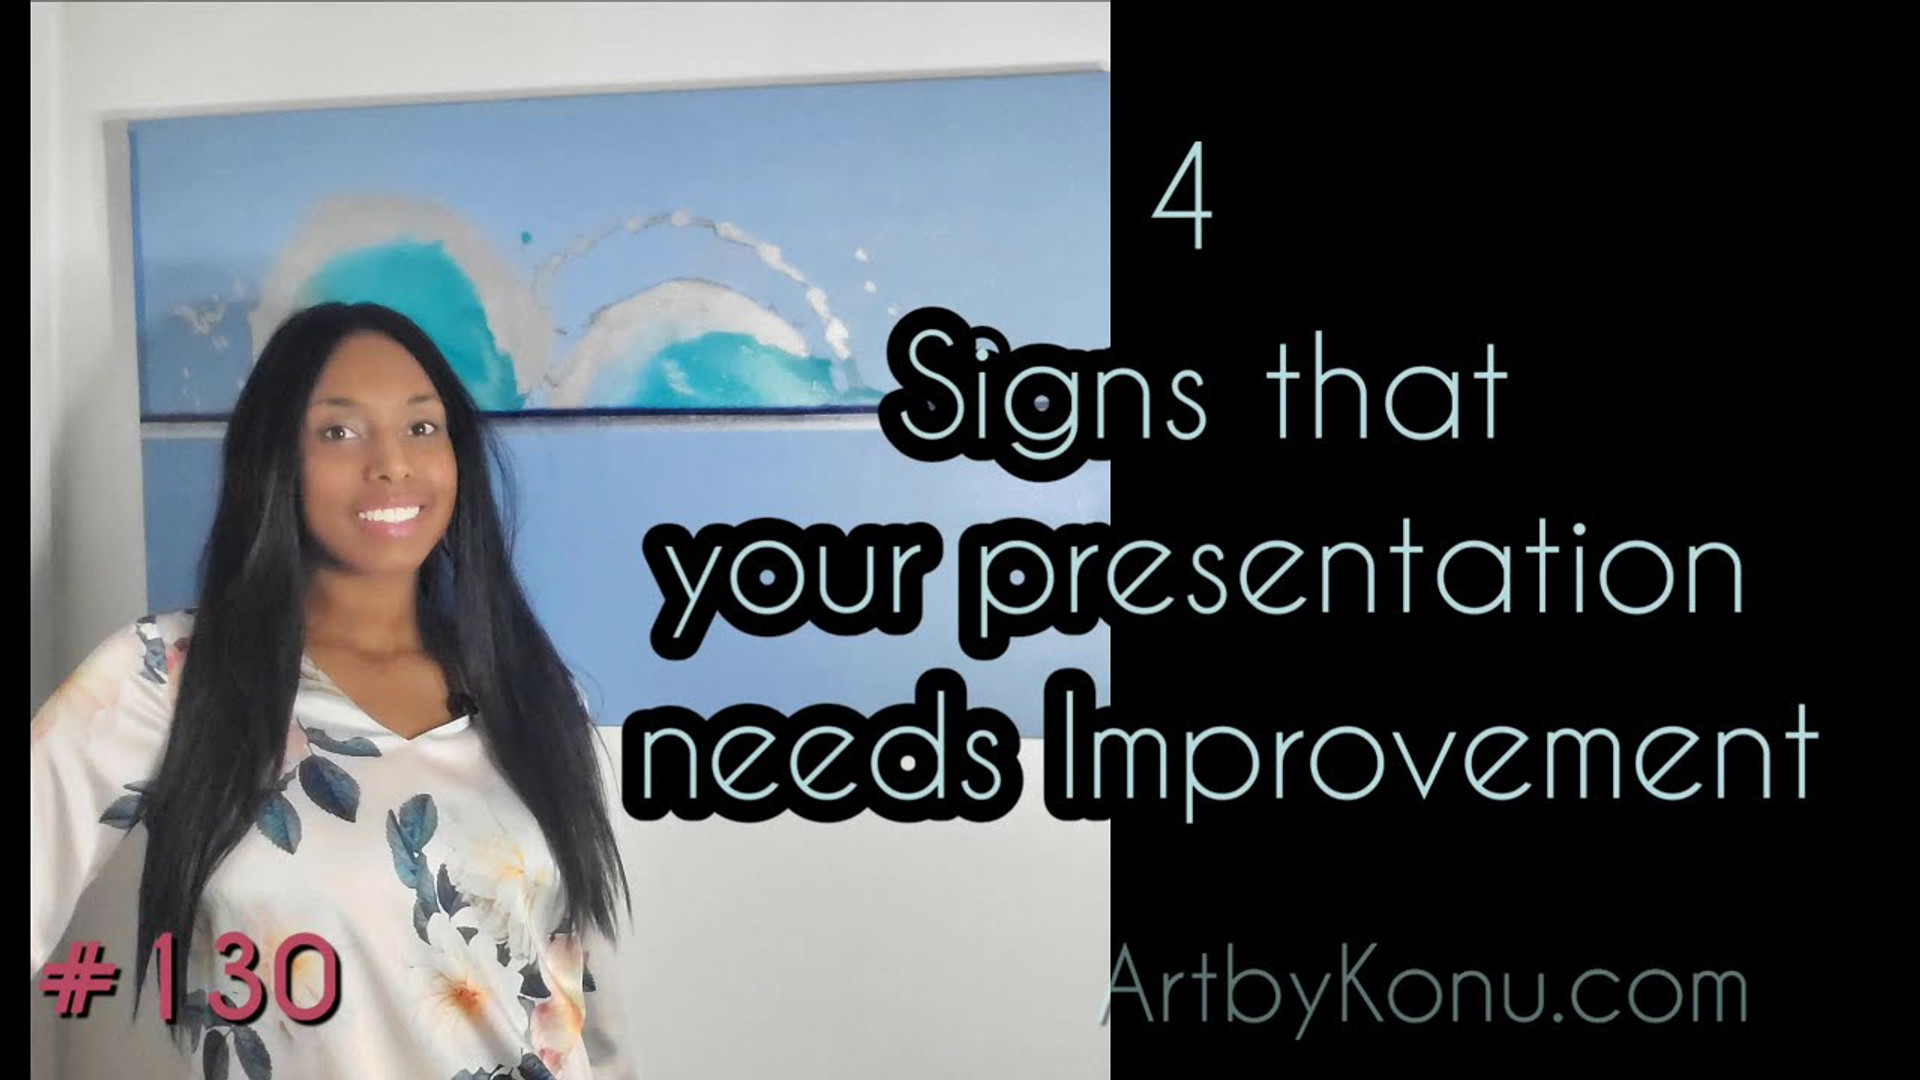 4 Signs that your presentation needs improvement